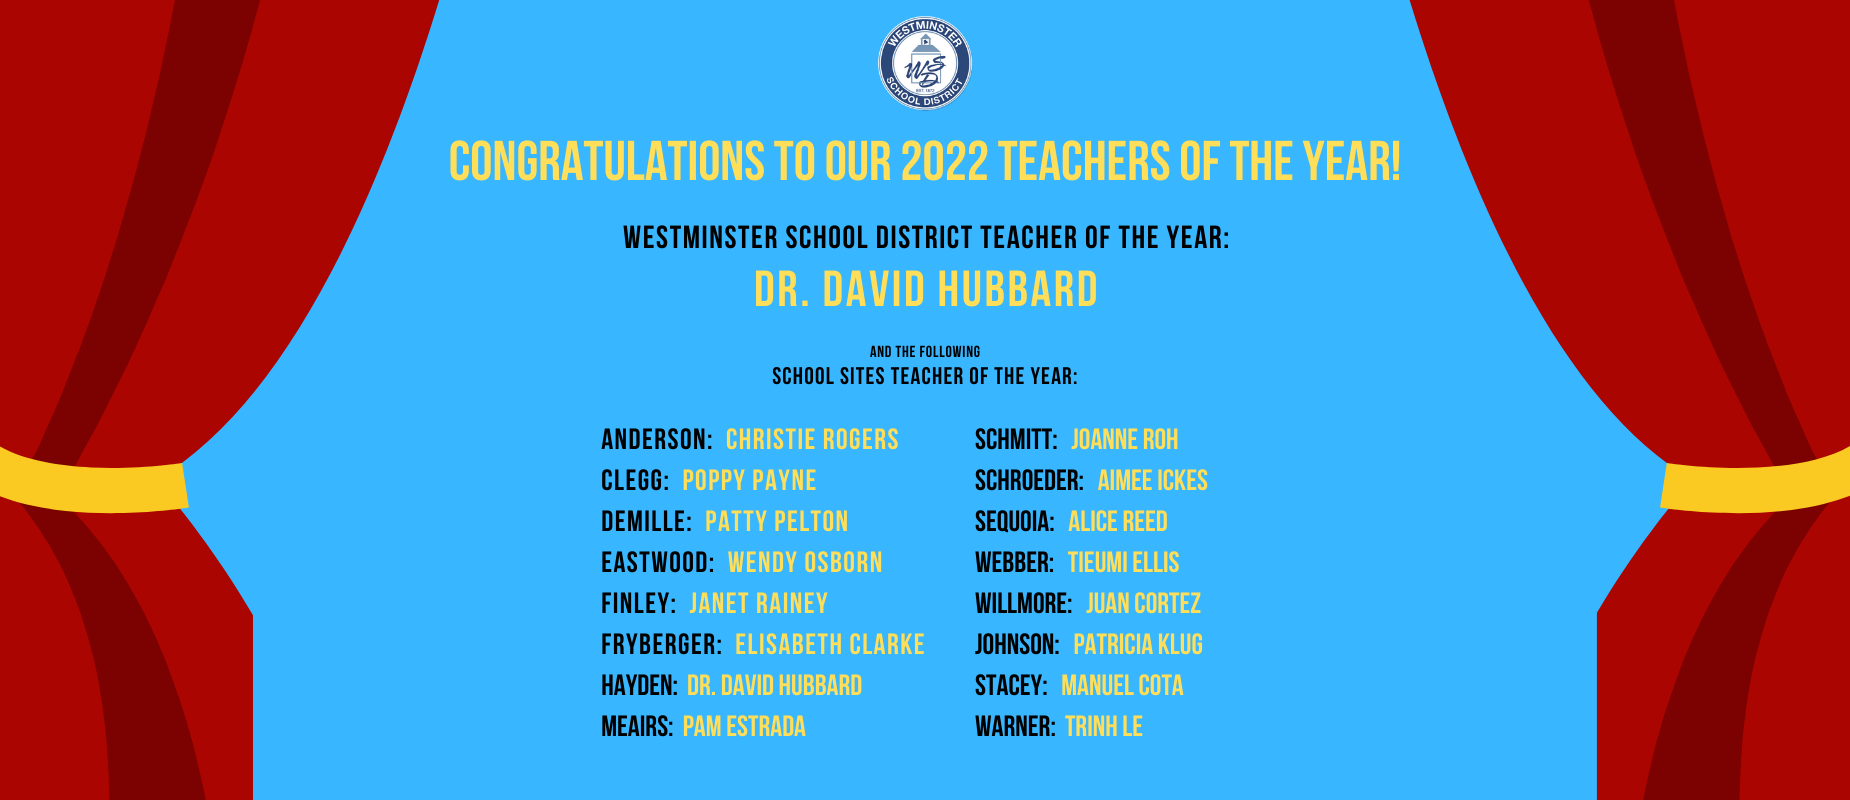 Congratulations to our 2022 Teachers of the Year